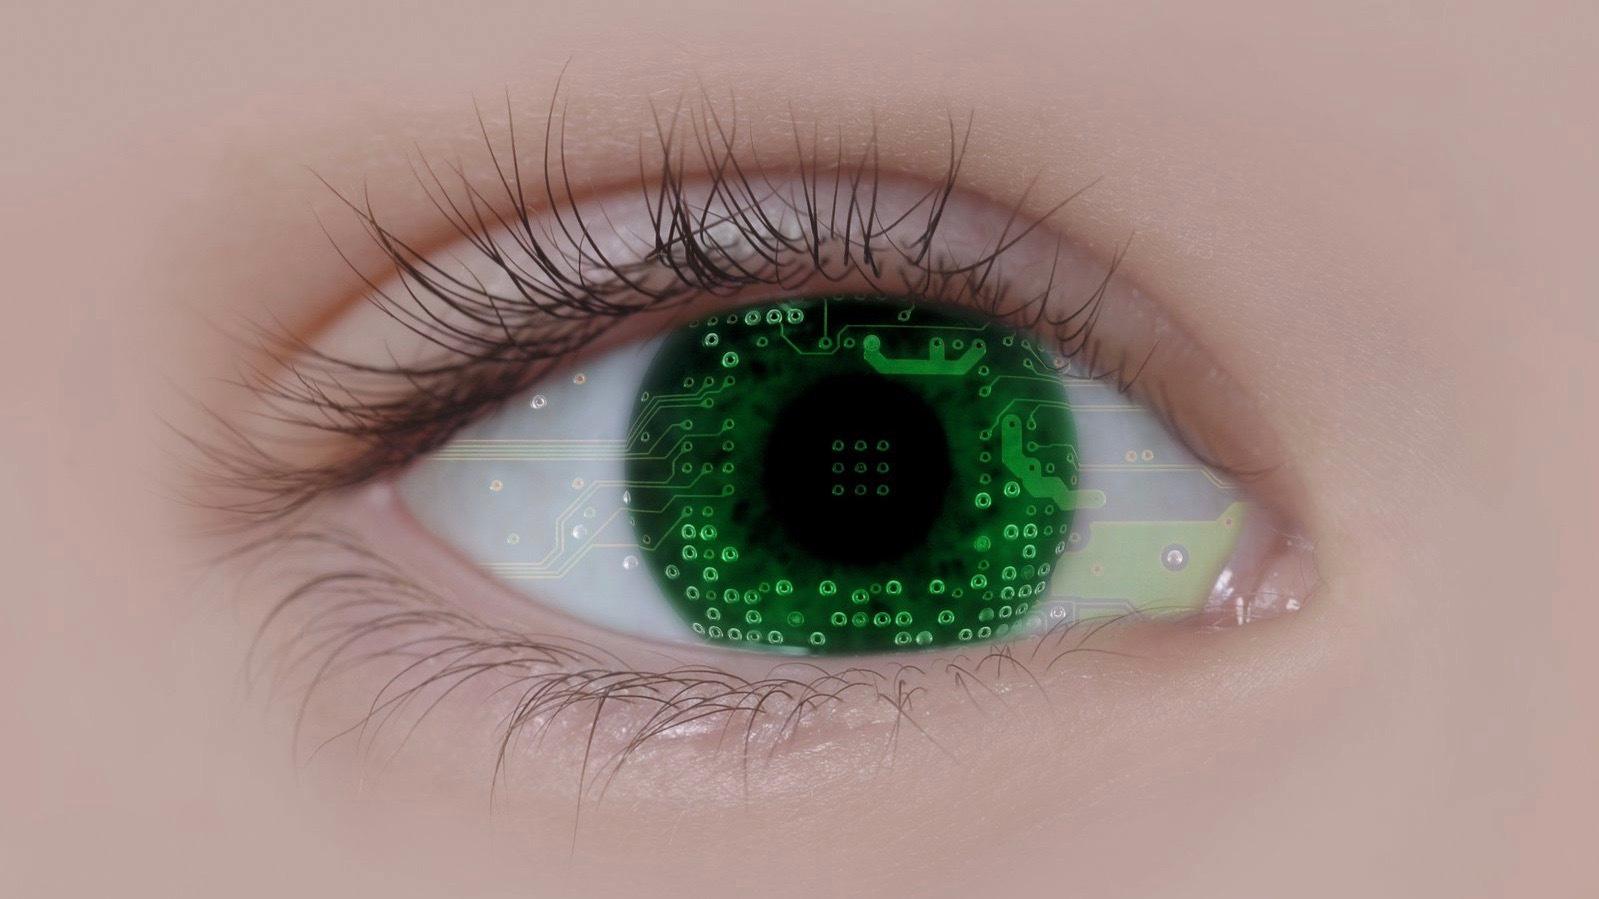 automated eye